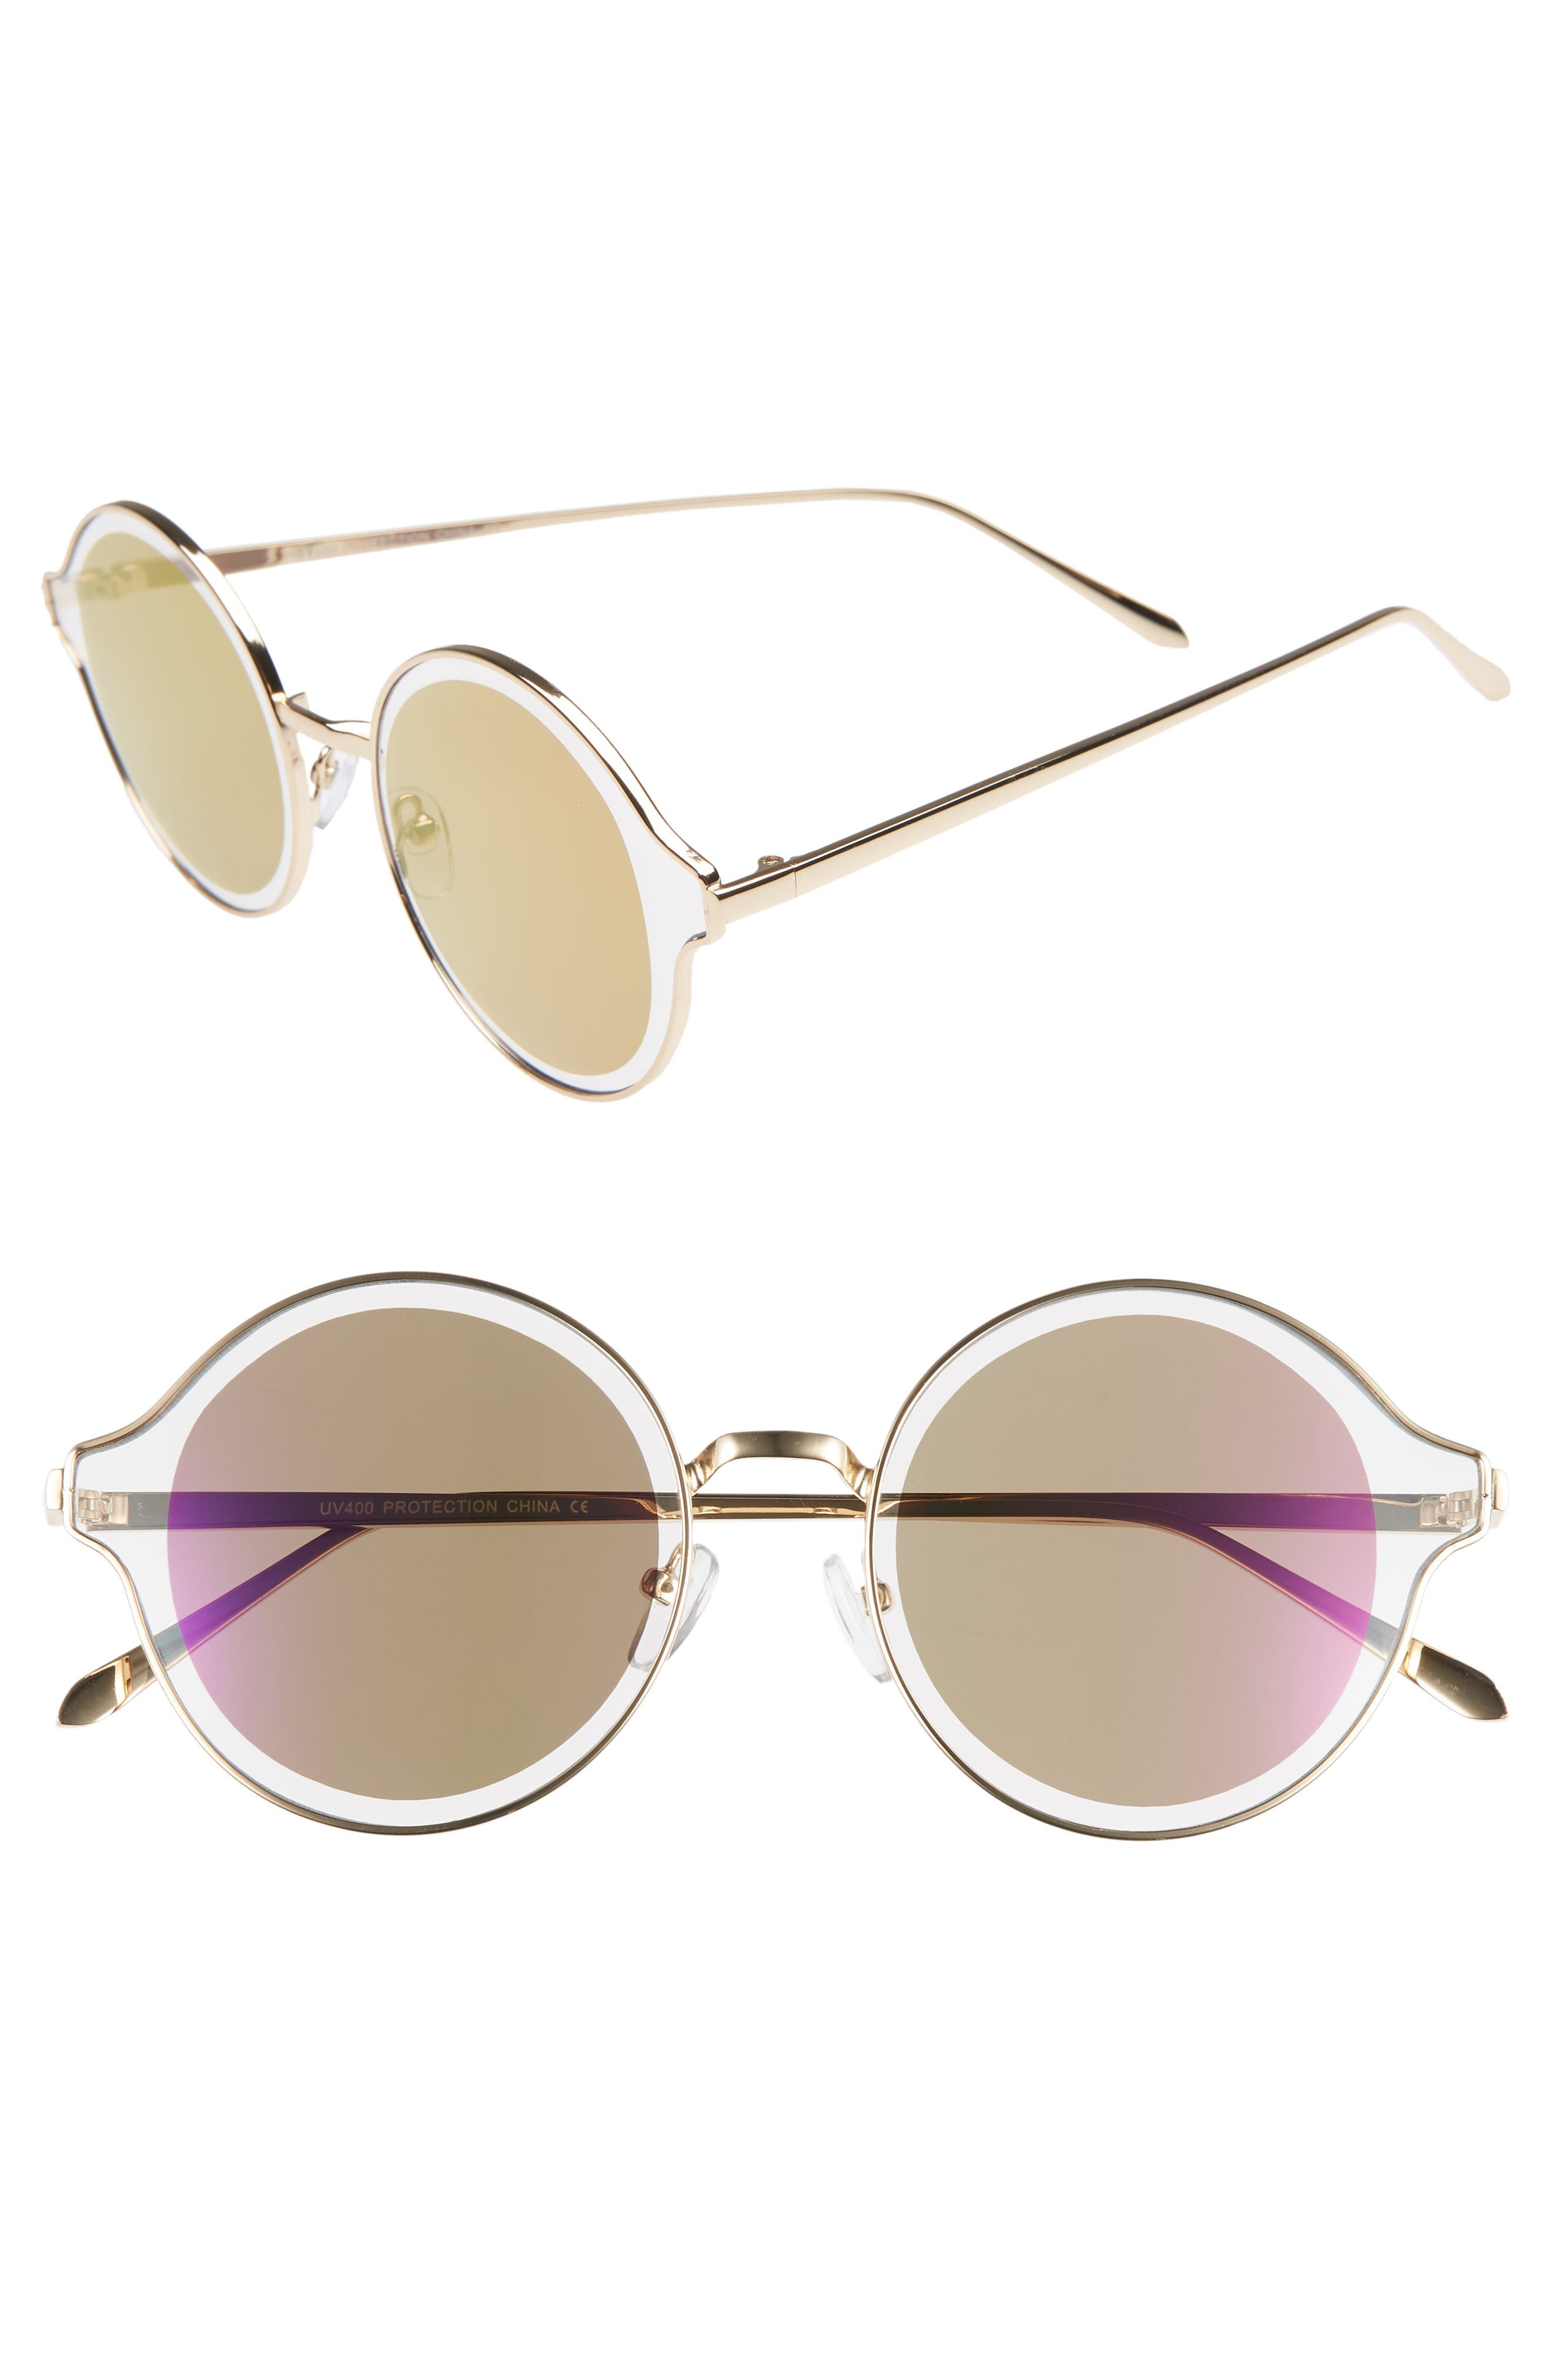 60mm Round Sunglasses,                             Main thumbnail 1, color,                             BROWN/ GOLD